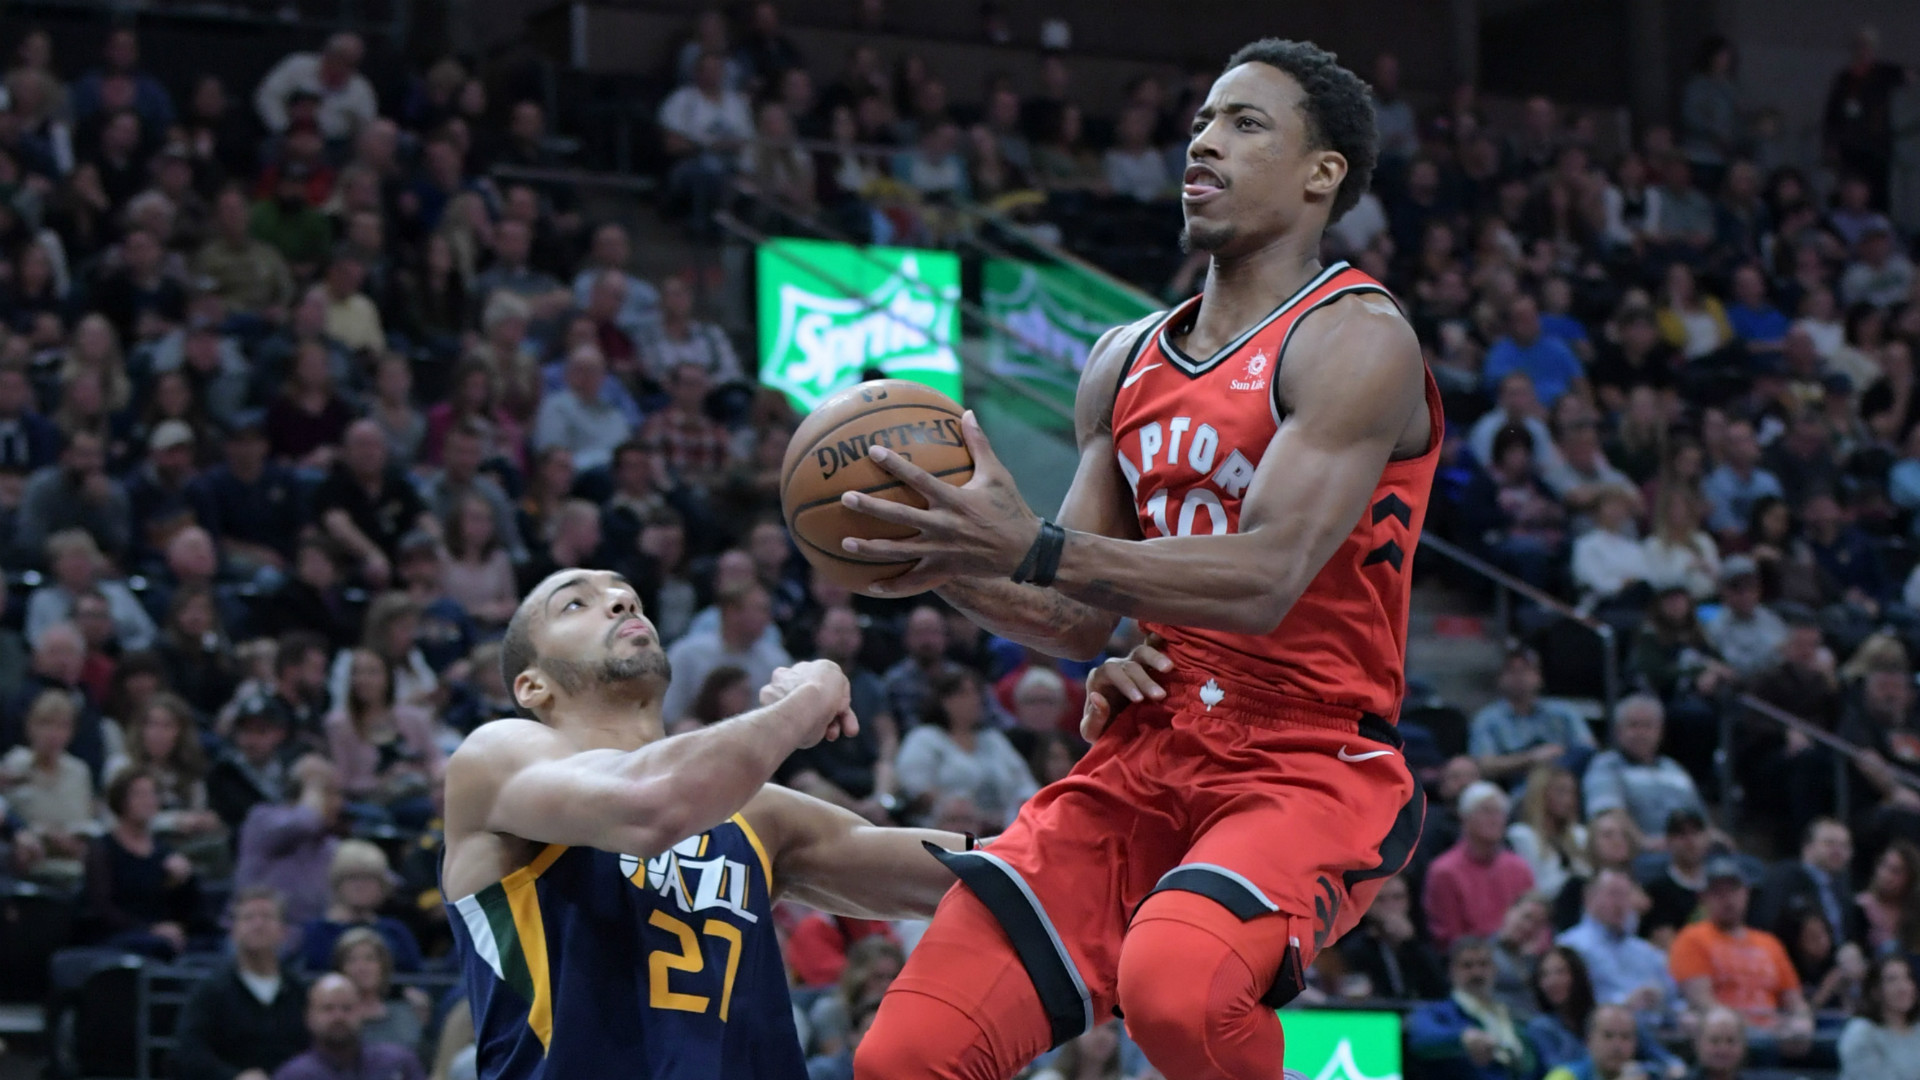 Raptors' DeMar DeRozan picks up Eastern Conference player of week award